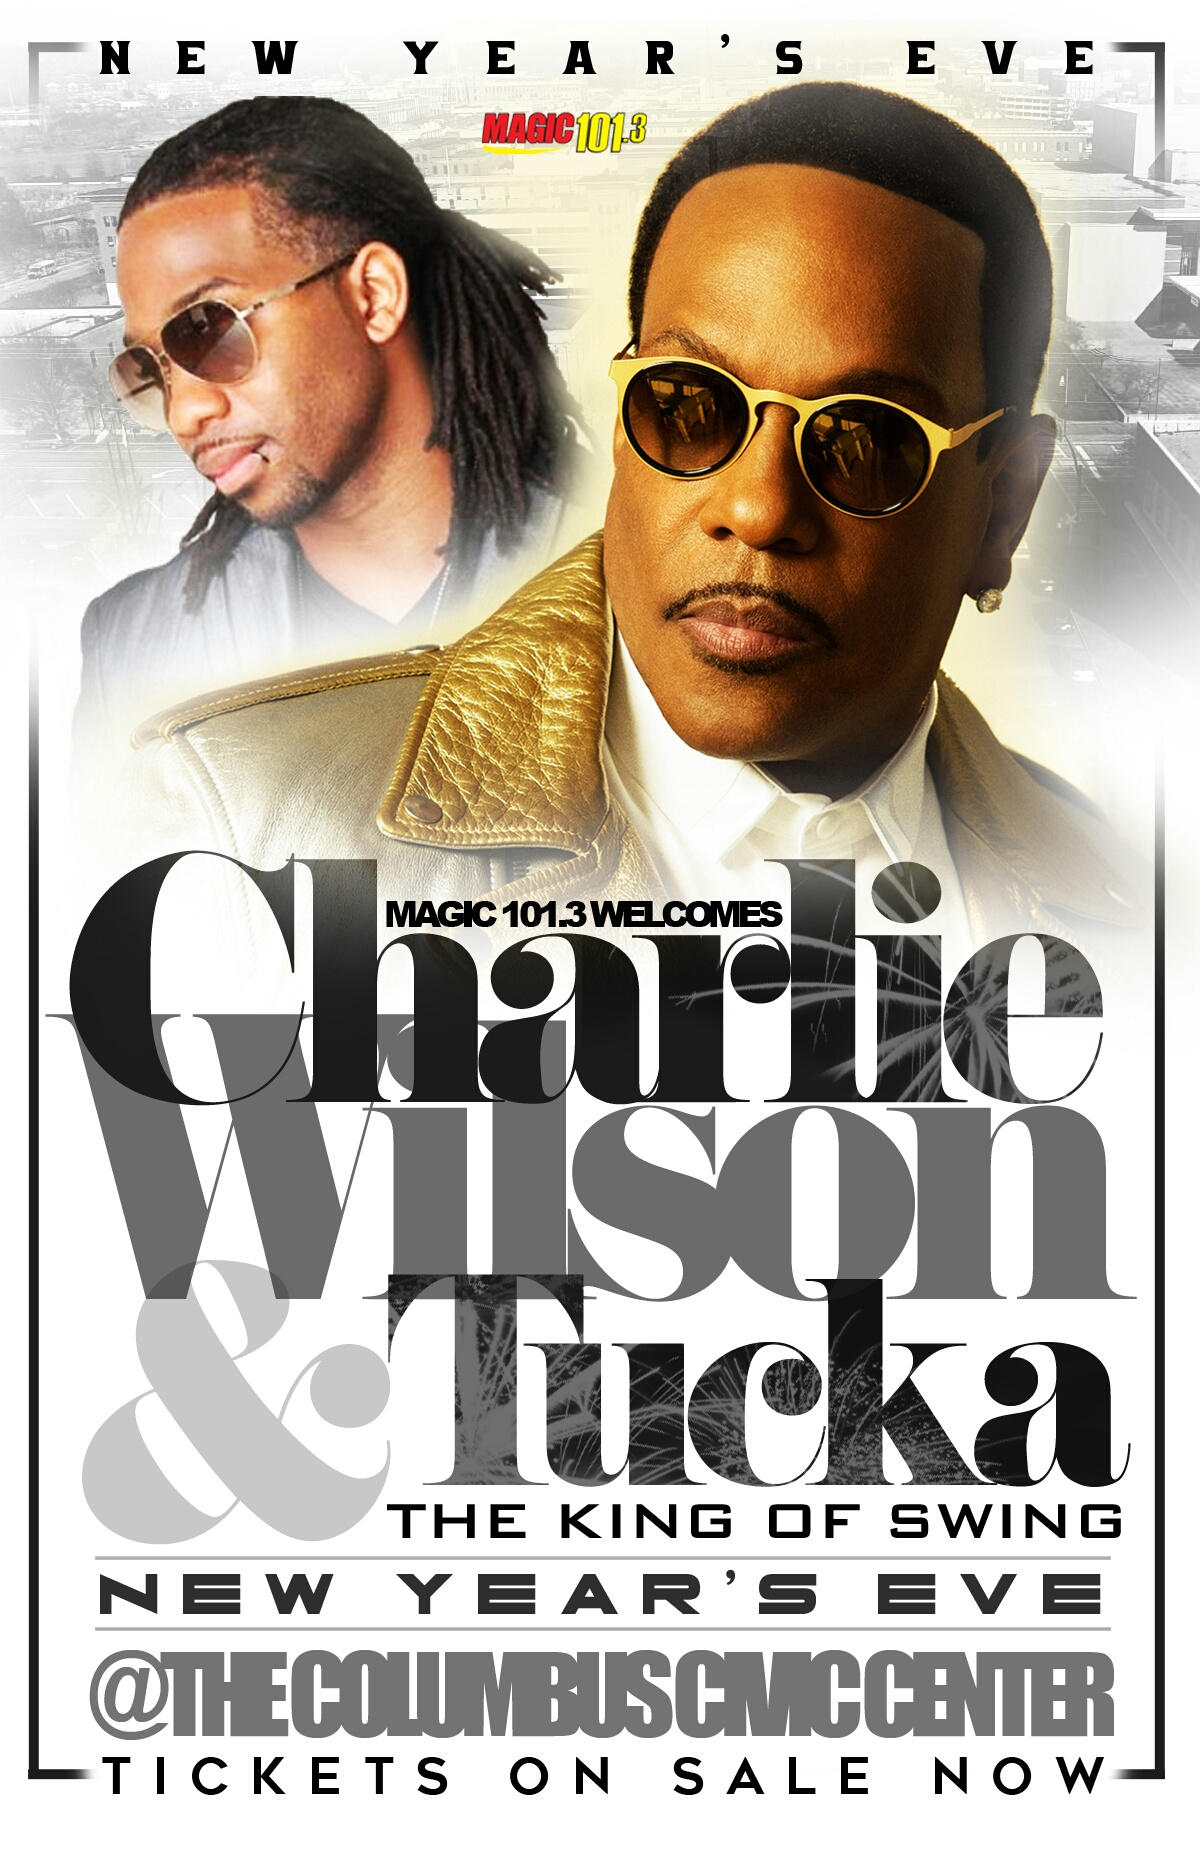 Charlie Wilson with Special guest Tucka